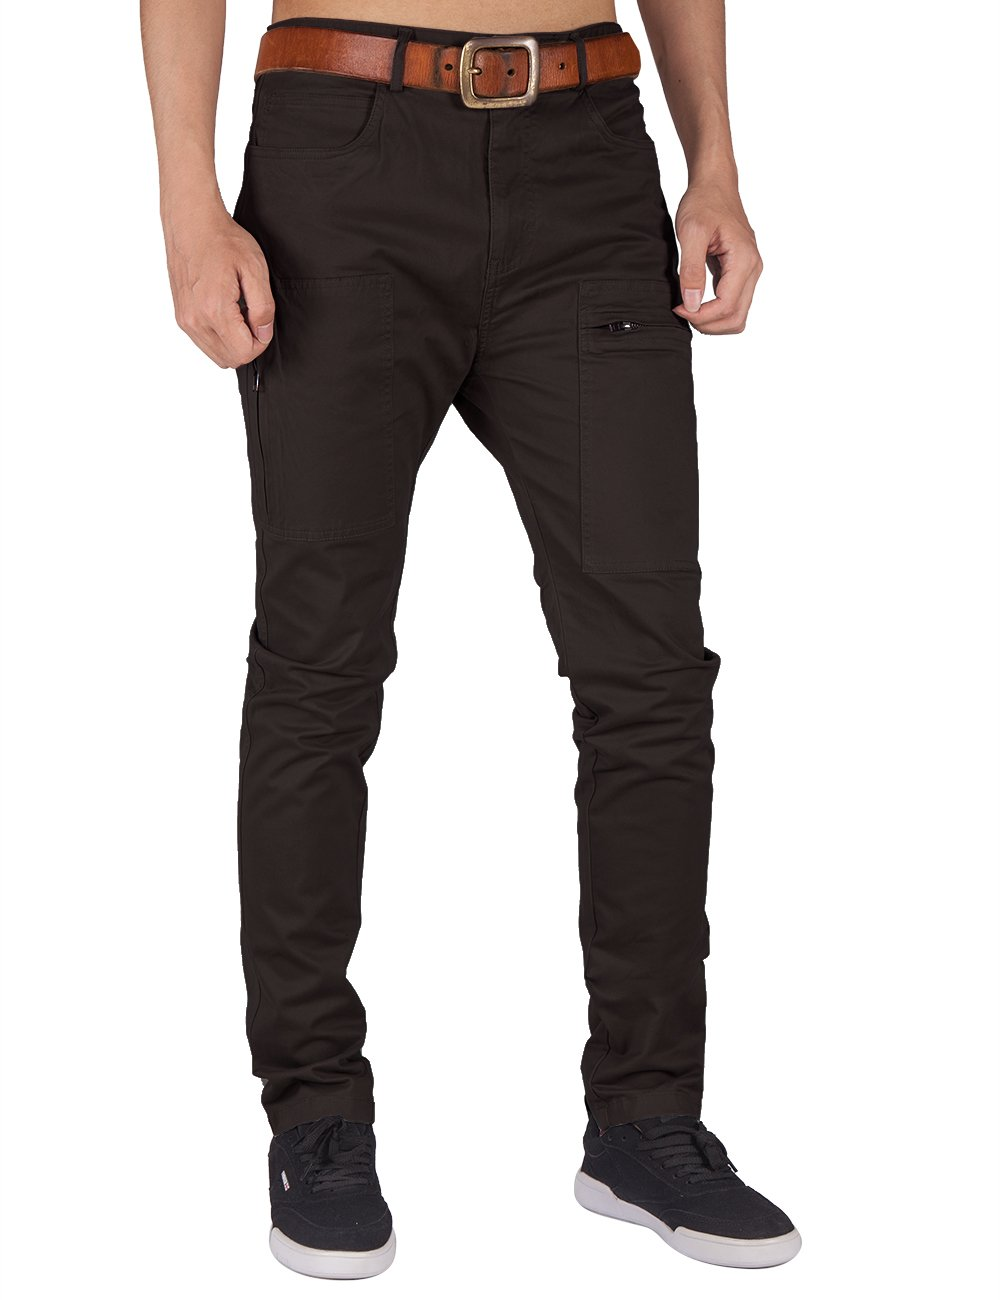 ITALY MORN Men's Chino Khaki Cotton Casual Pants M Peat Grey by ITALY MORN (Image #2)